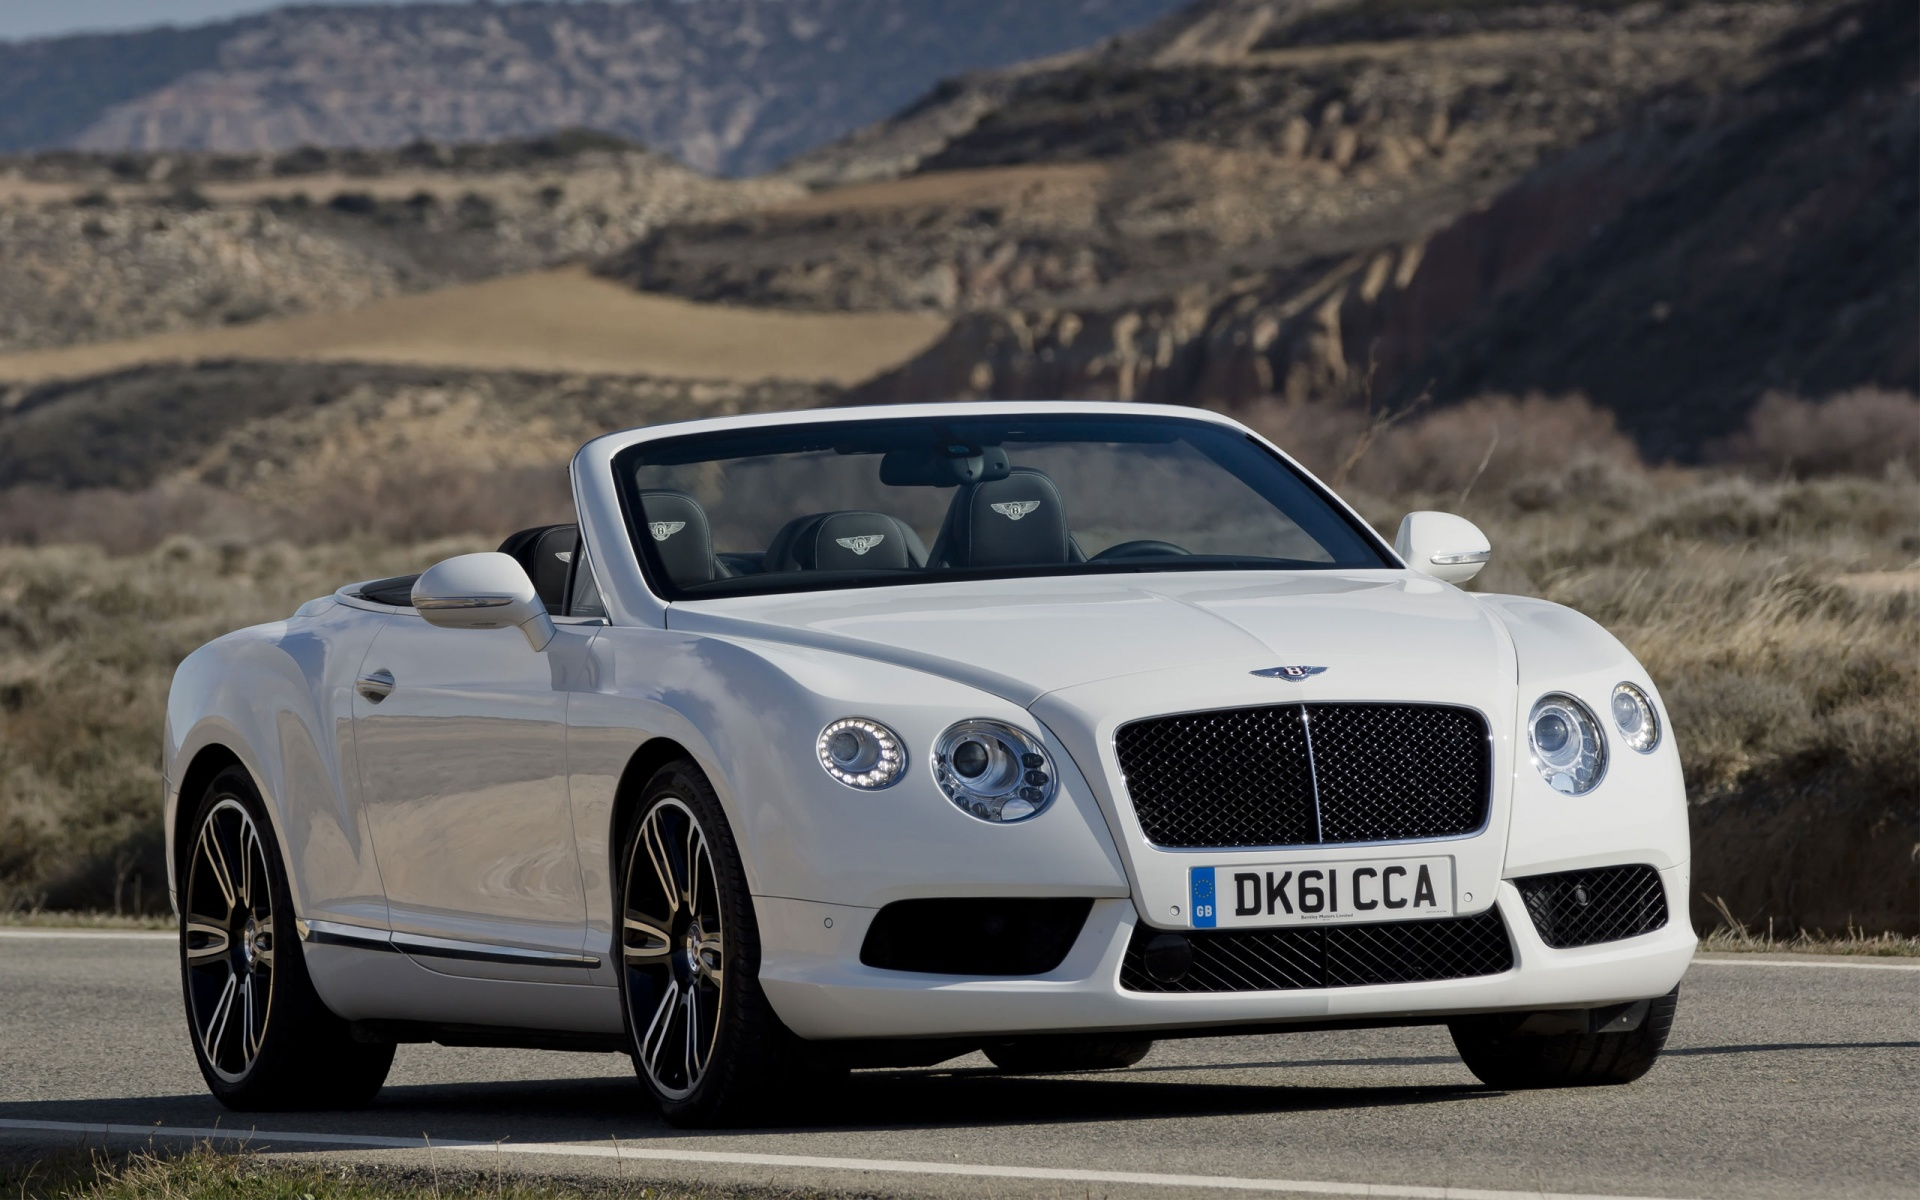 Bentley Cars Picture & images